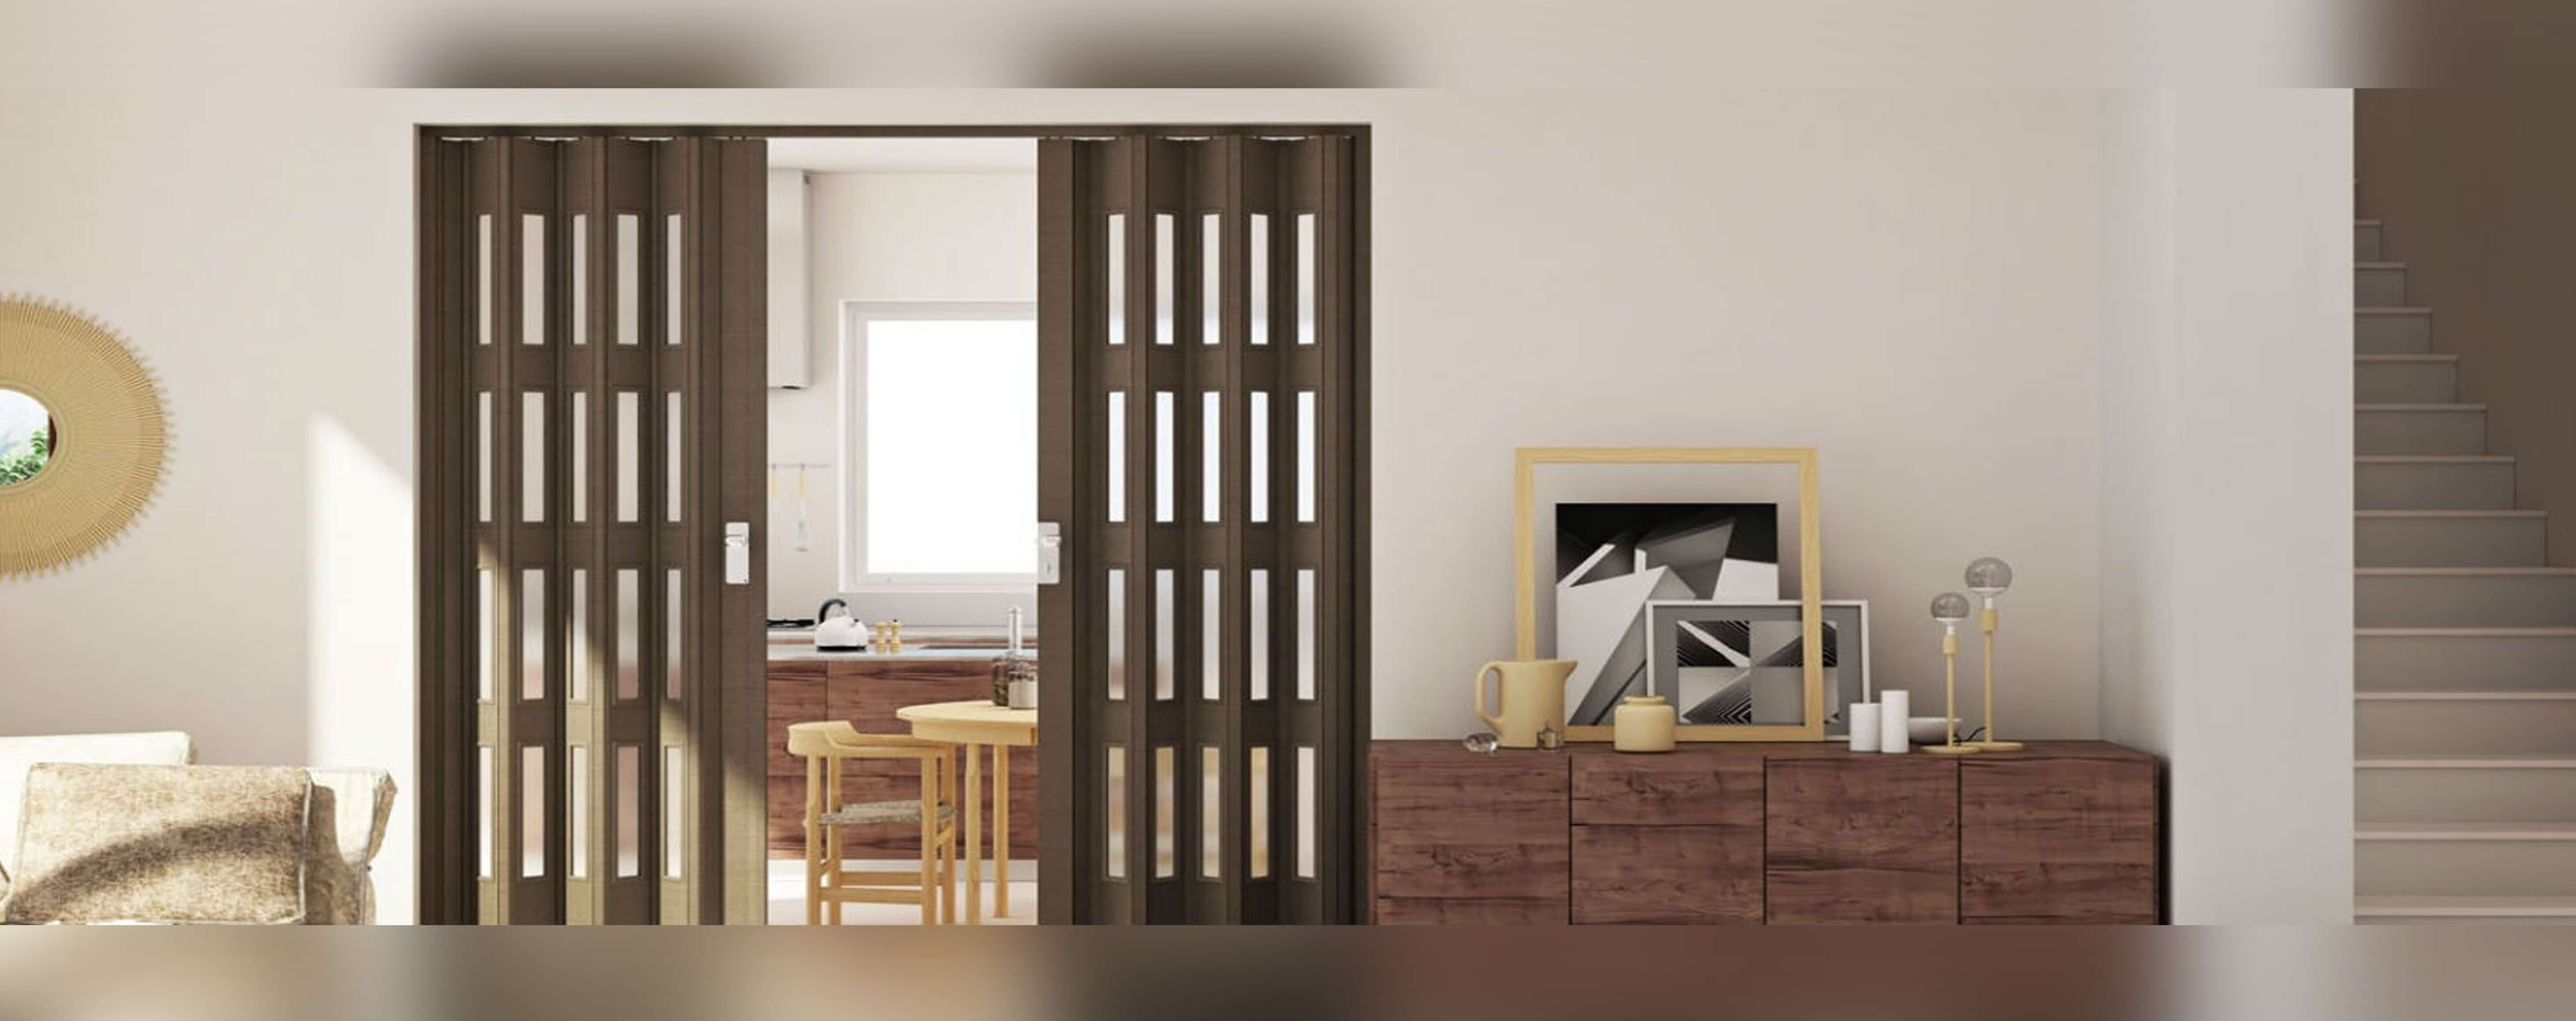 Residential - Interior - Folding Doors - BannerA.jpg